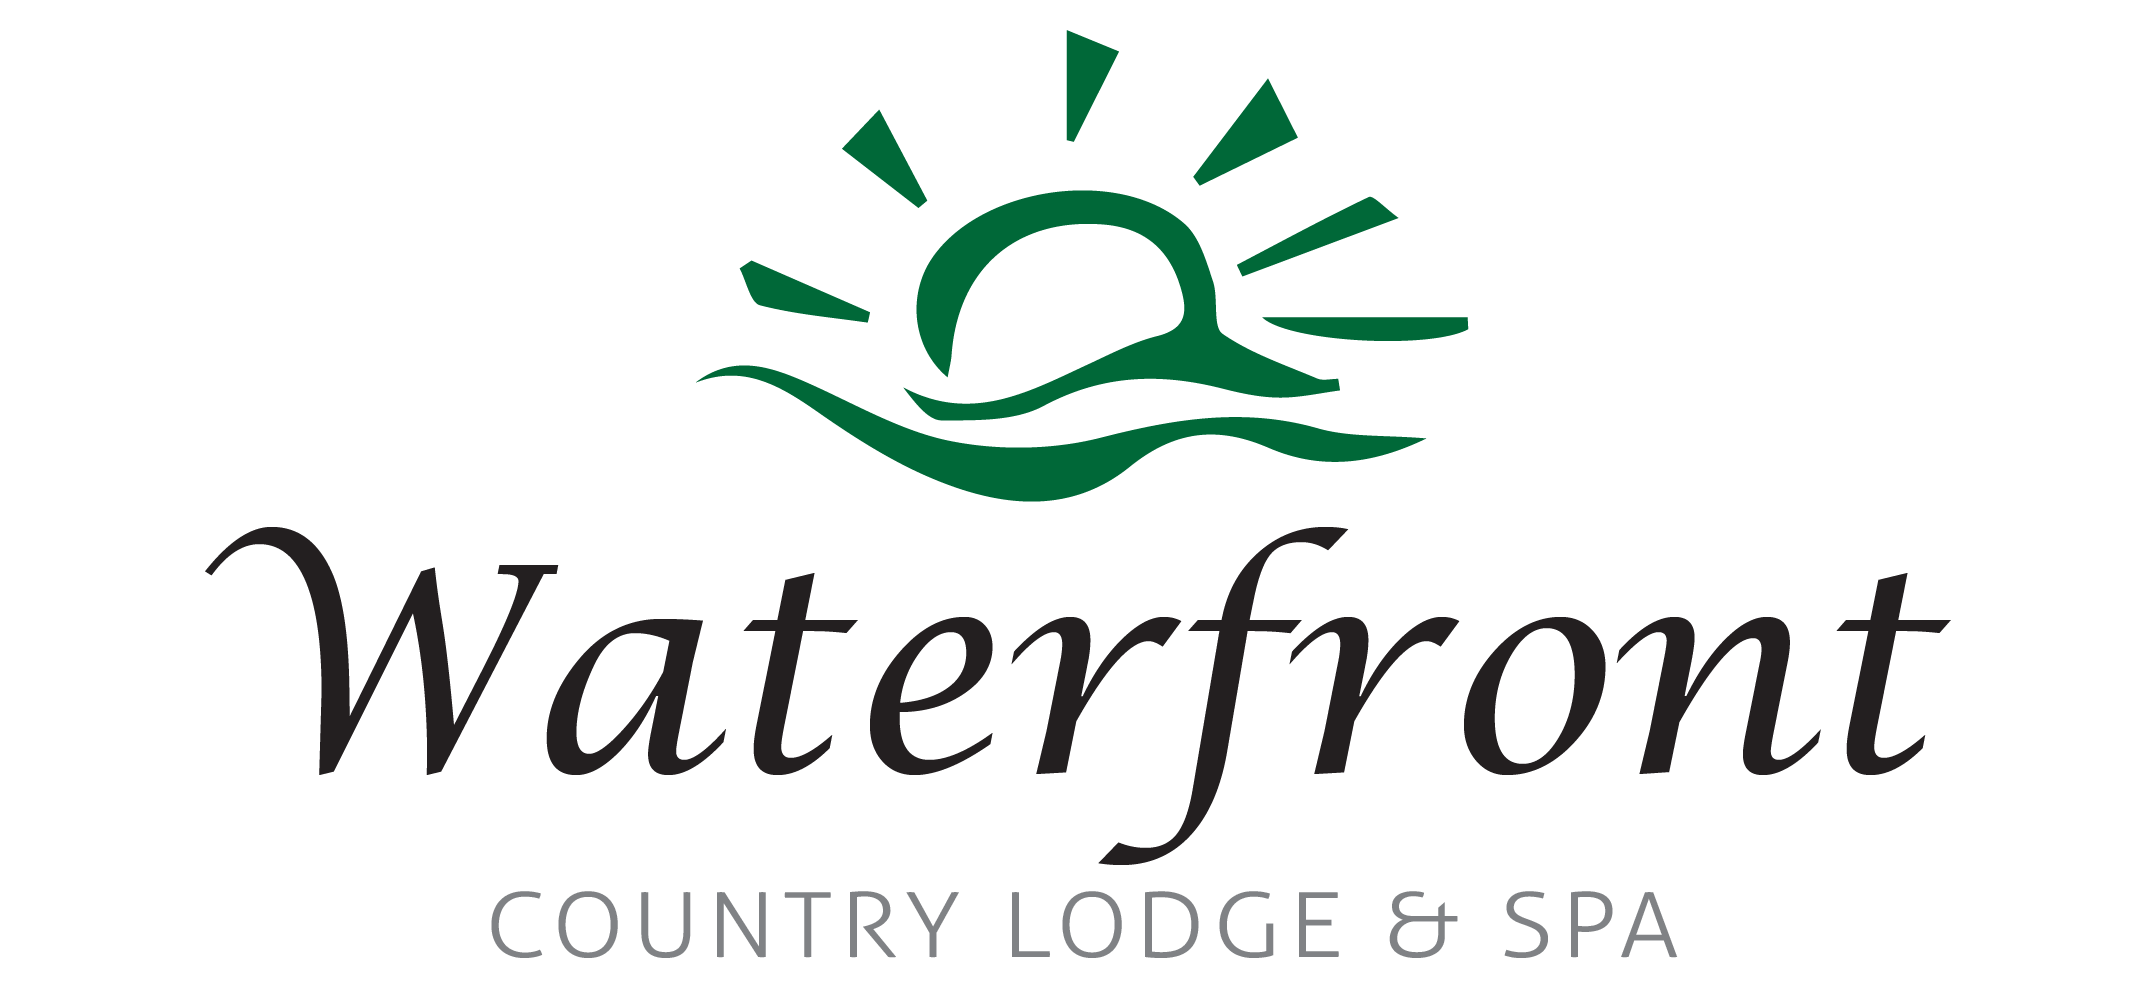 Waterfront Country Lodge